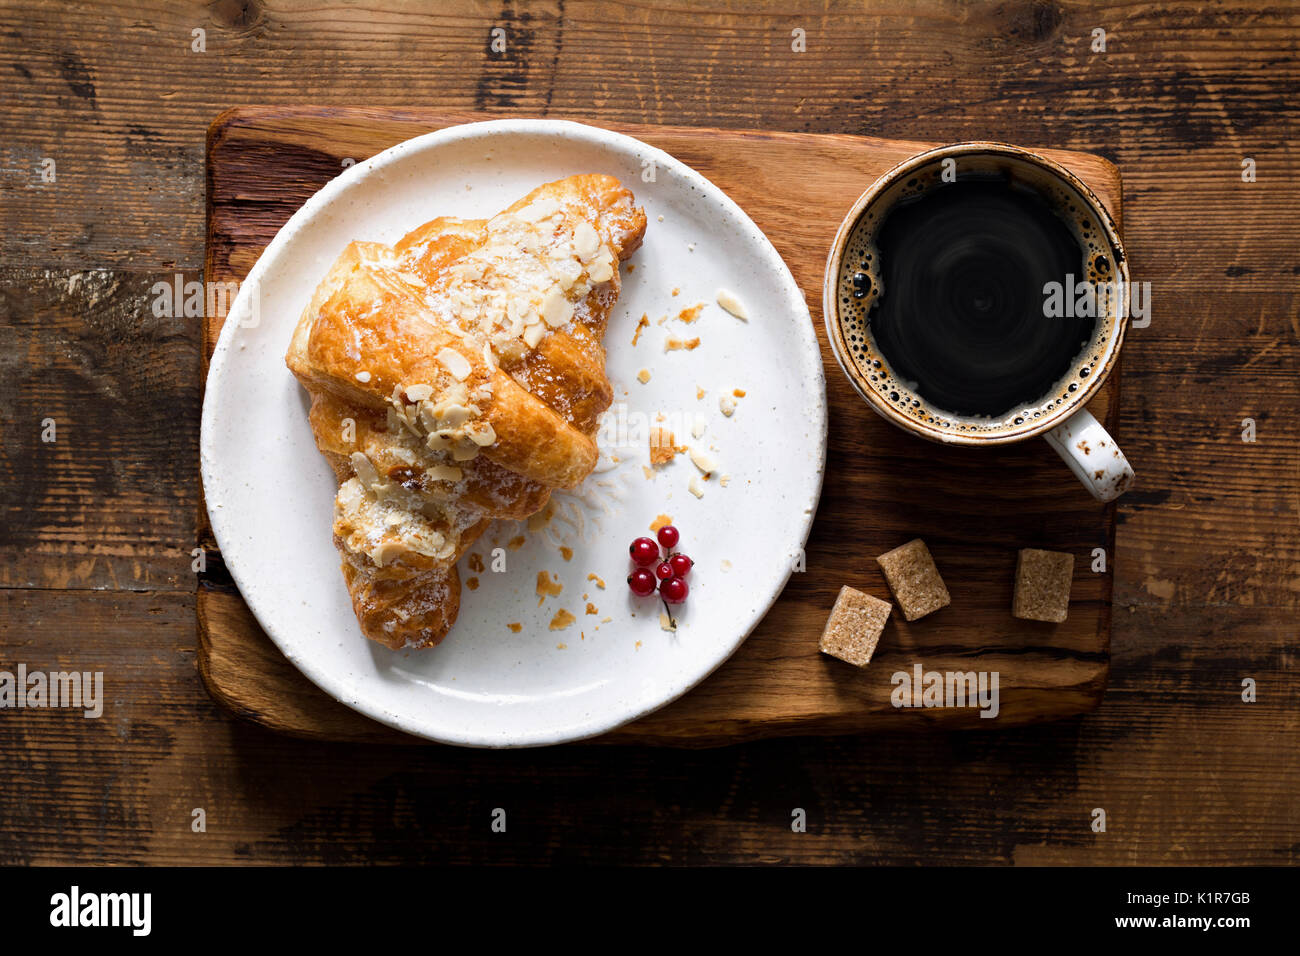 Almond croissant and cup of black coffee espresso on wooden cutting board. Table top view - Stock Image